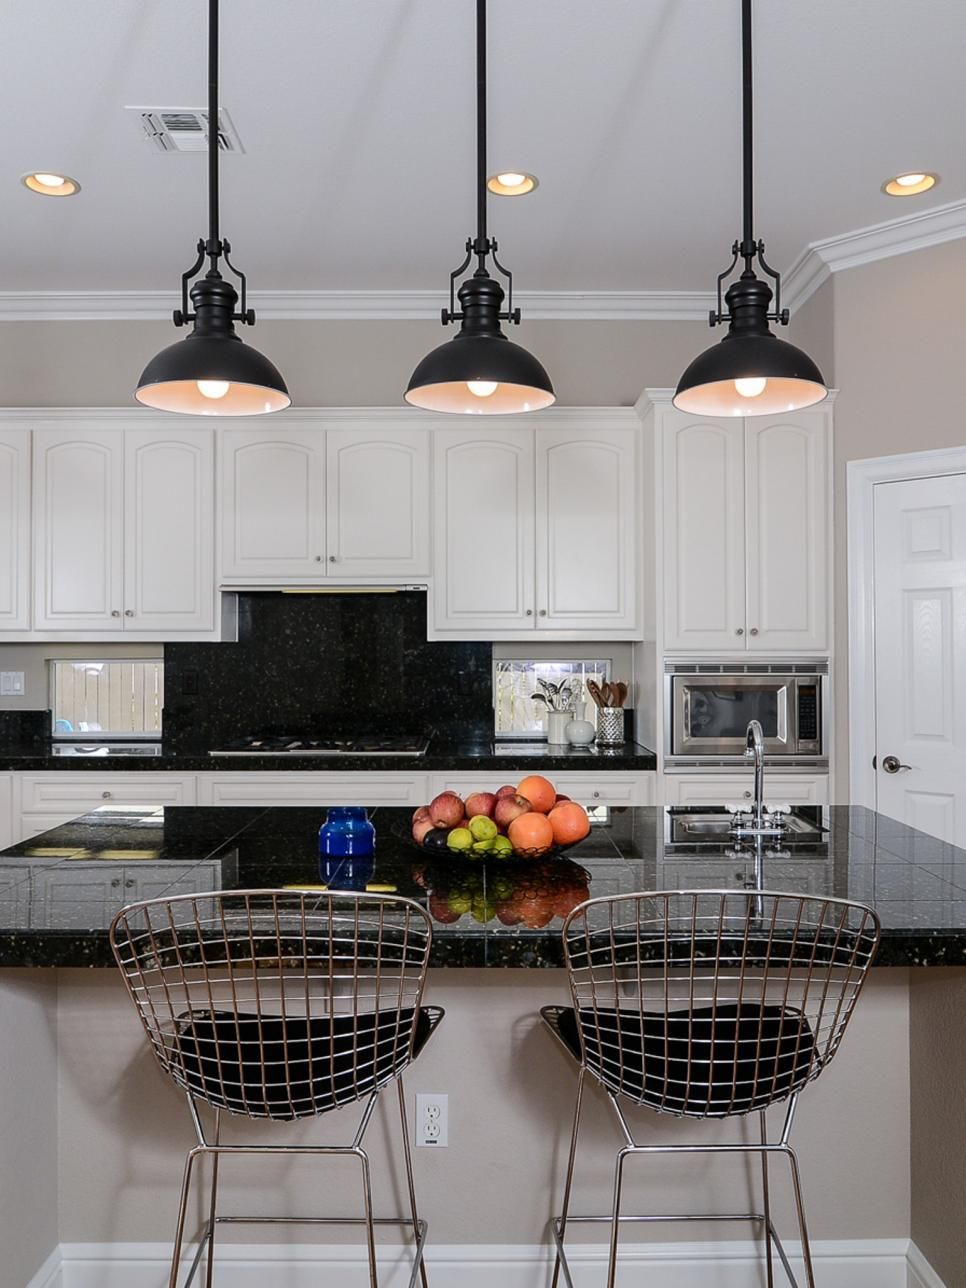 A Pair Of Stylish Mesh Back Barstools Serve As Seating At This Eat